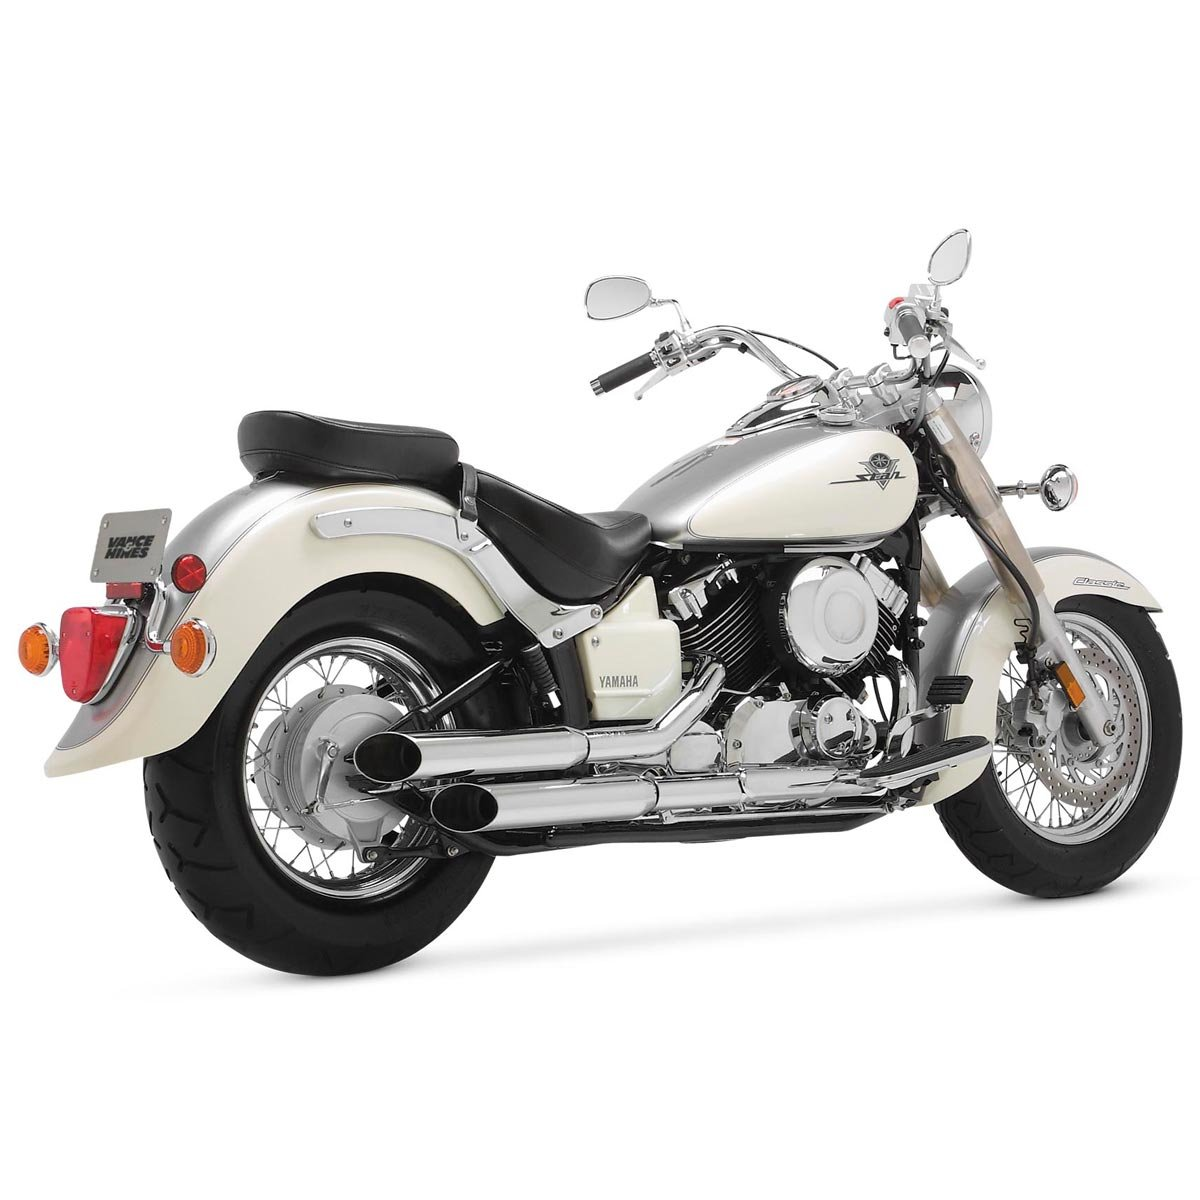 Vance and Hines Cruzers Full System Exhaust for Yamaha 1998-2003 V-Star 650 mod - One Size